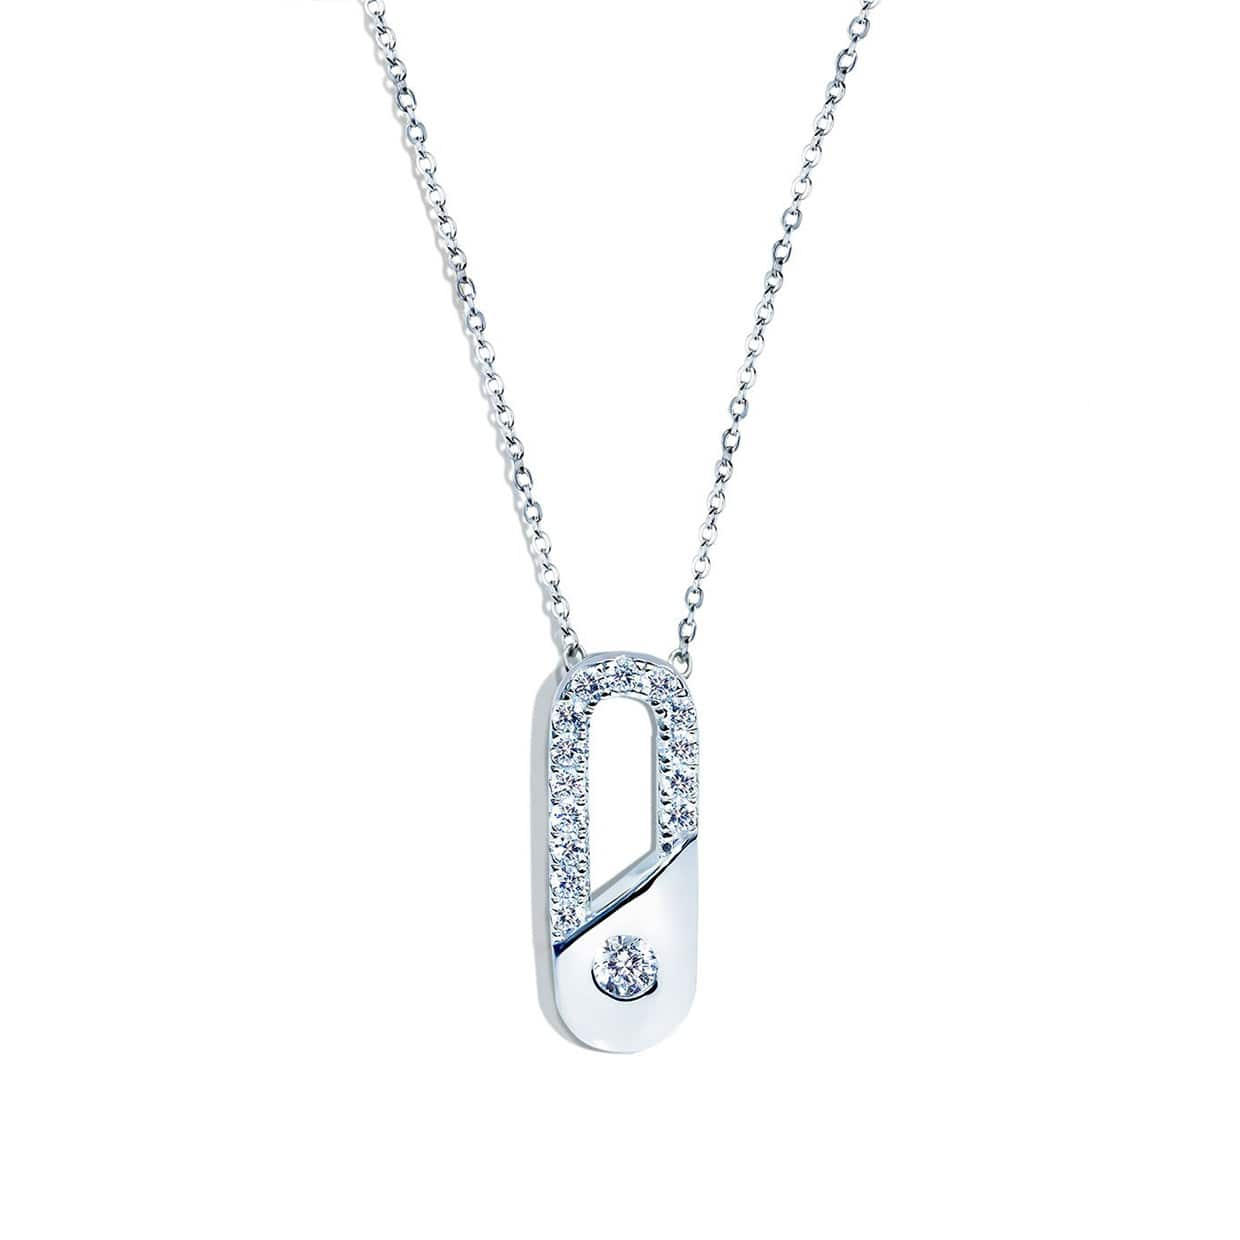 Abelstedt A Silver Clip Necklace - Abelstedt